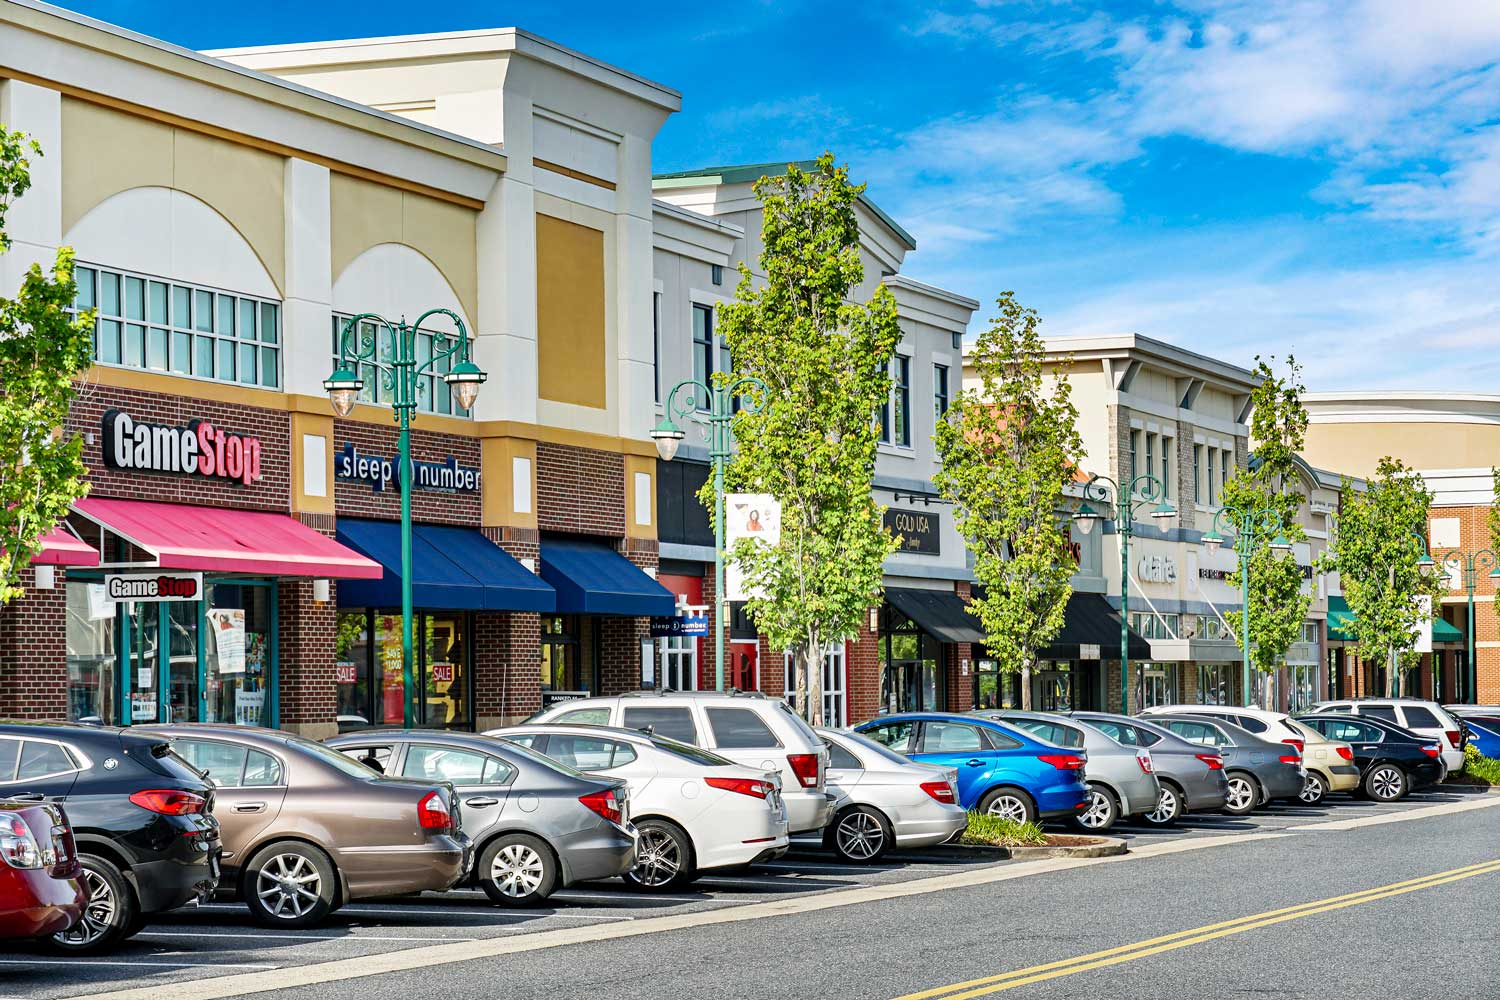 Bowie Town Center is 10 minutes from Carrollon Manor Apartments in New Carrollton, MD